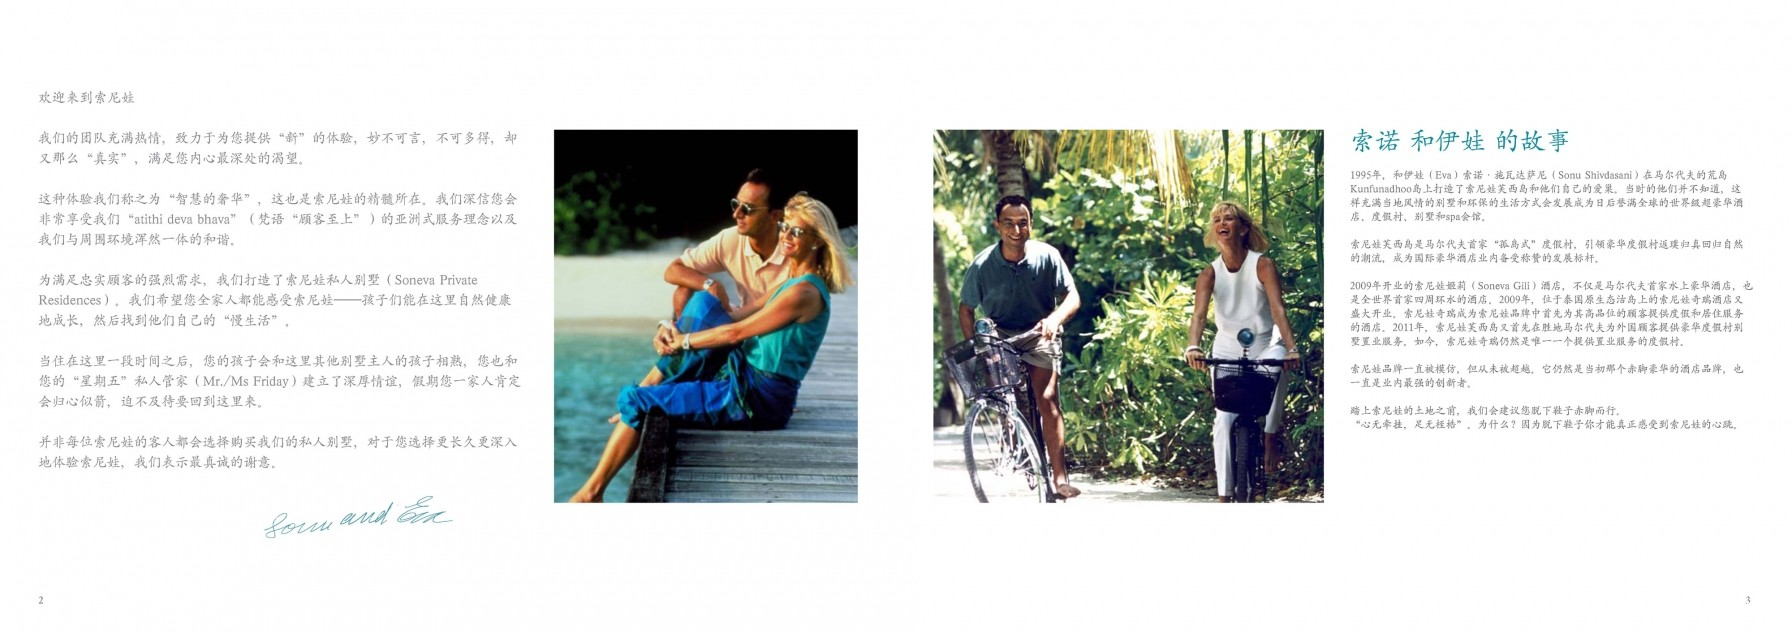 Soneva_Fushi_Private_Residences_Mandarin_Brochure 2.jpg